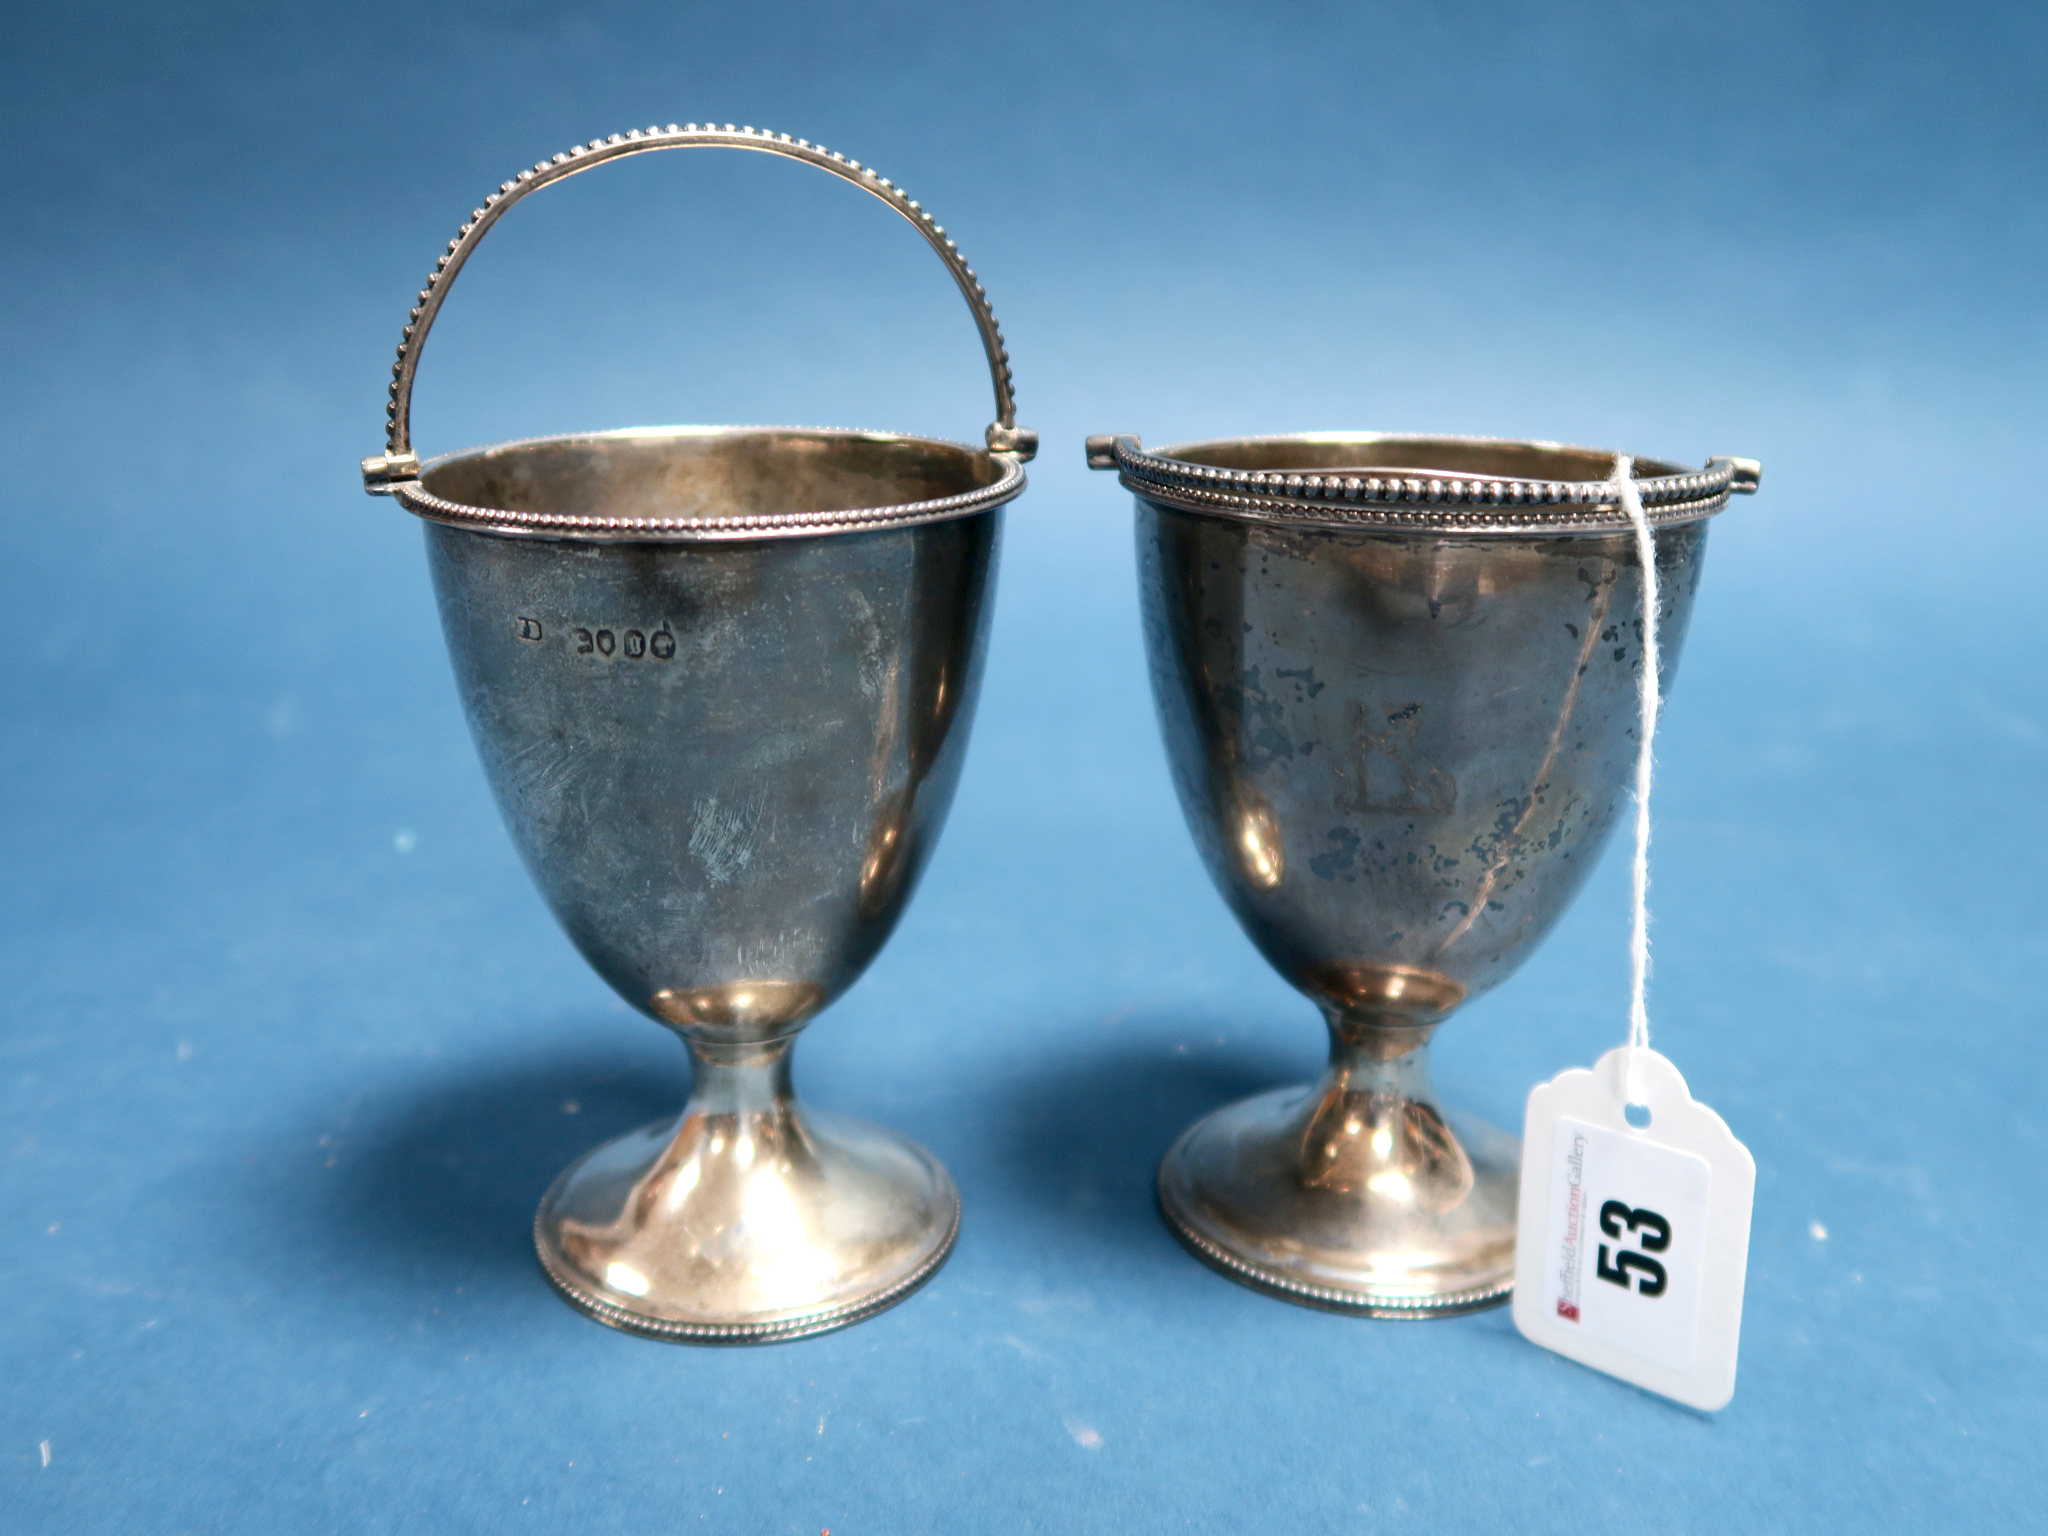 Lot 53 - A Pair of Victorian Hallmarked Silver Sugar Baskets, F.B, London 1862, each of plain tapering